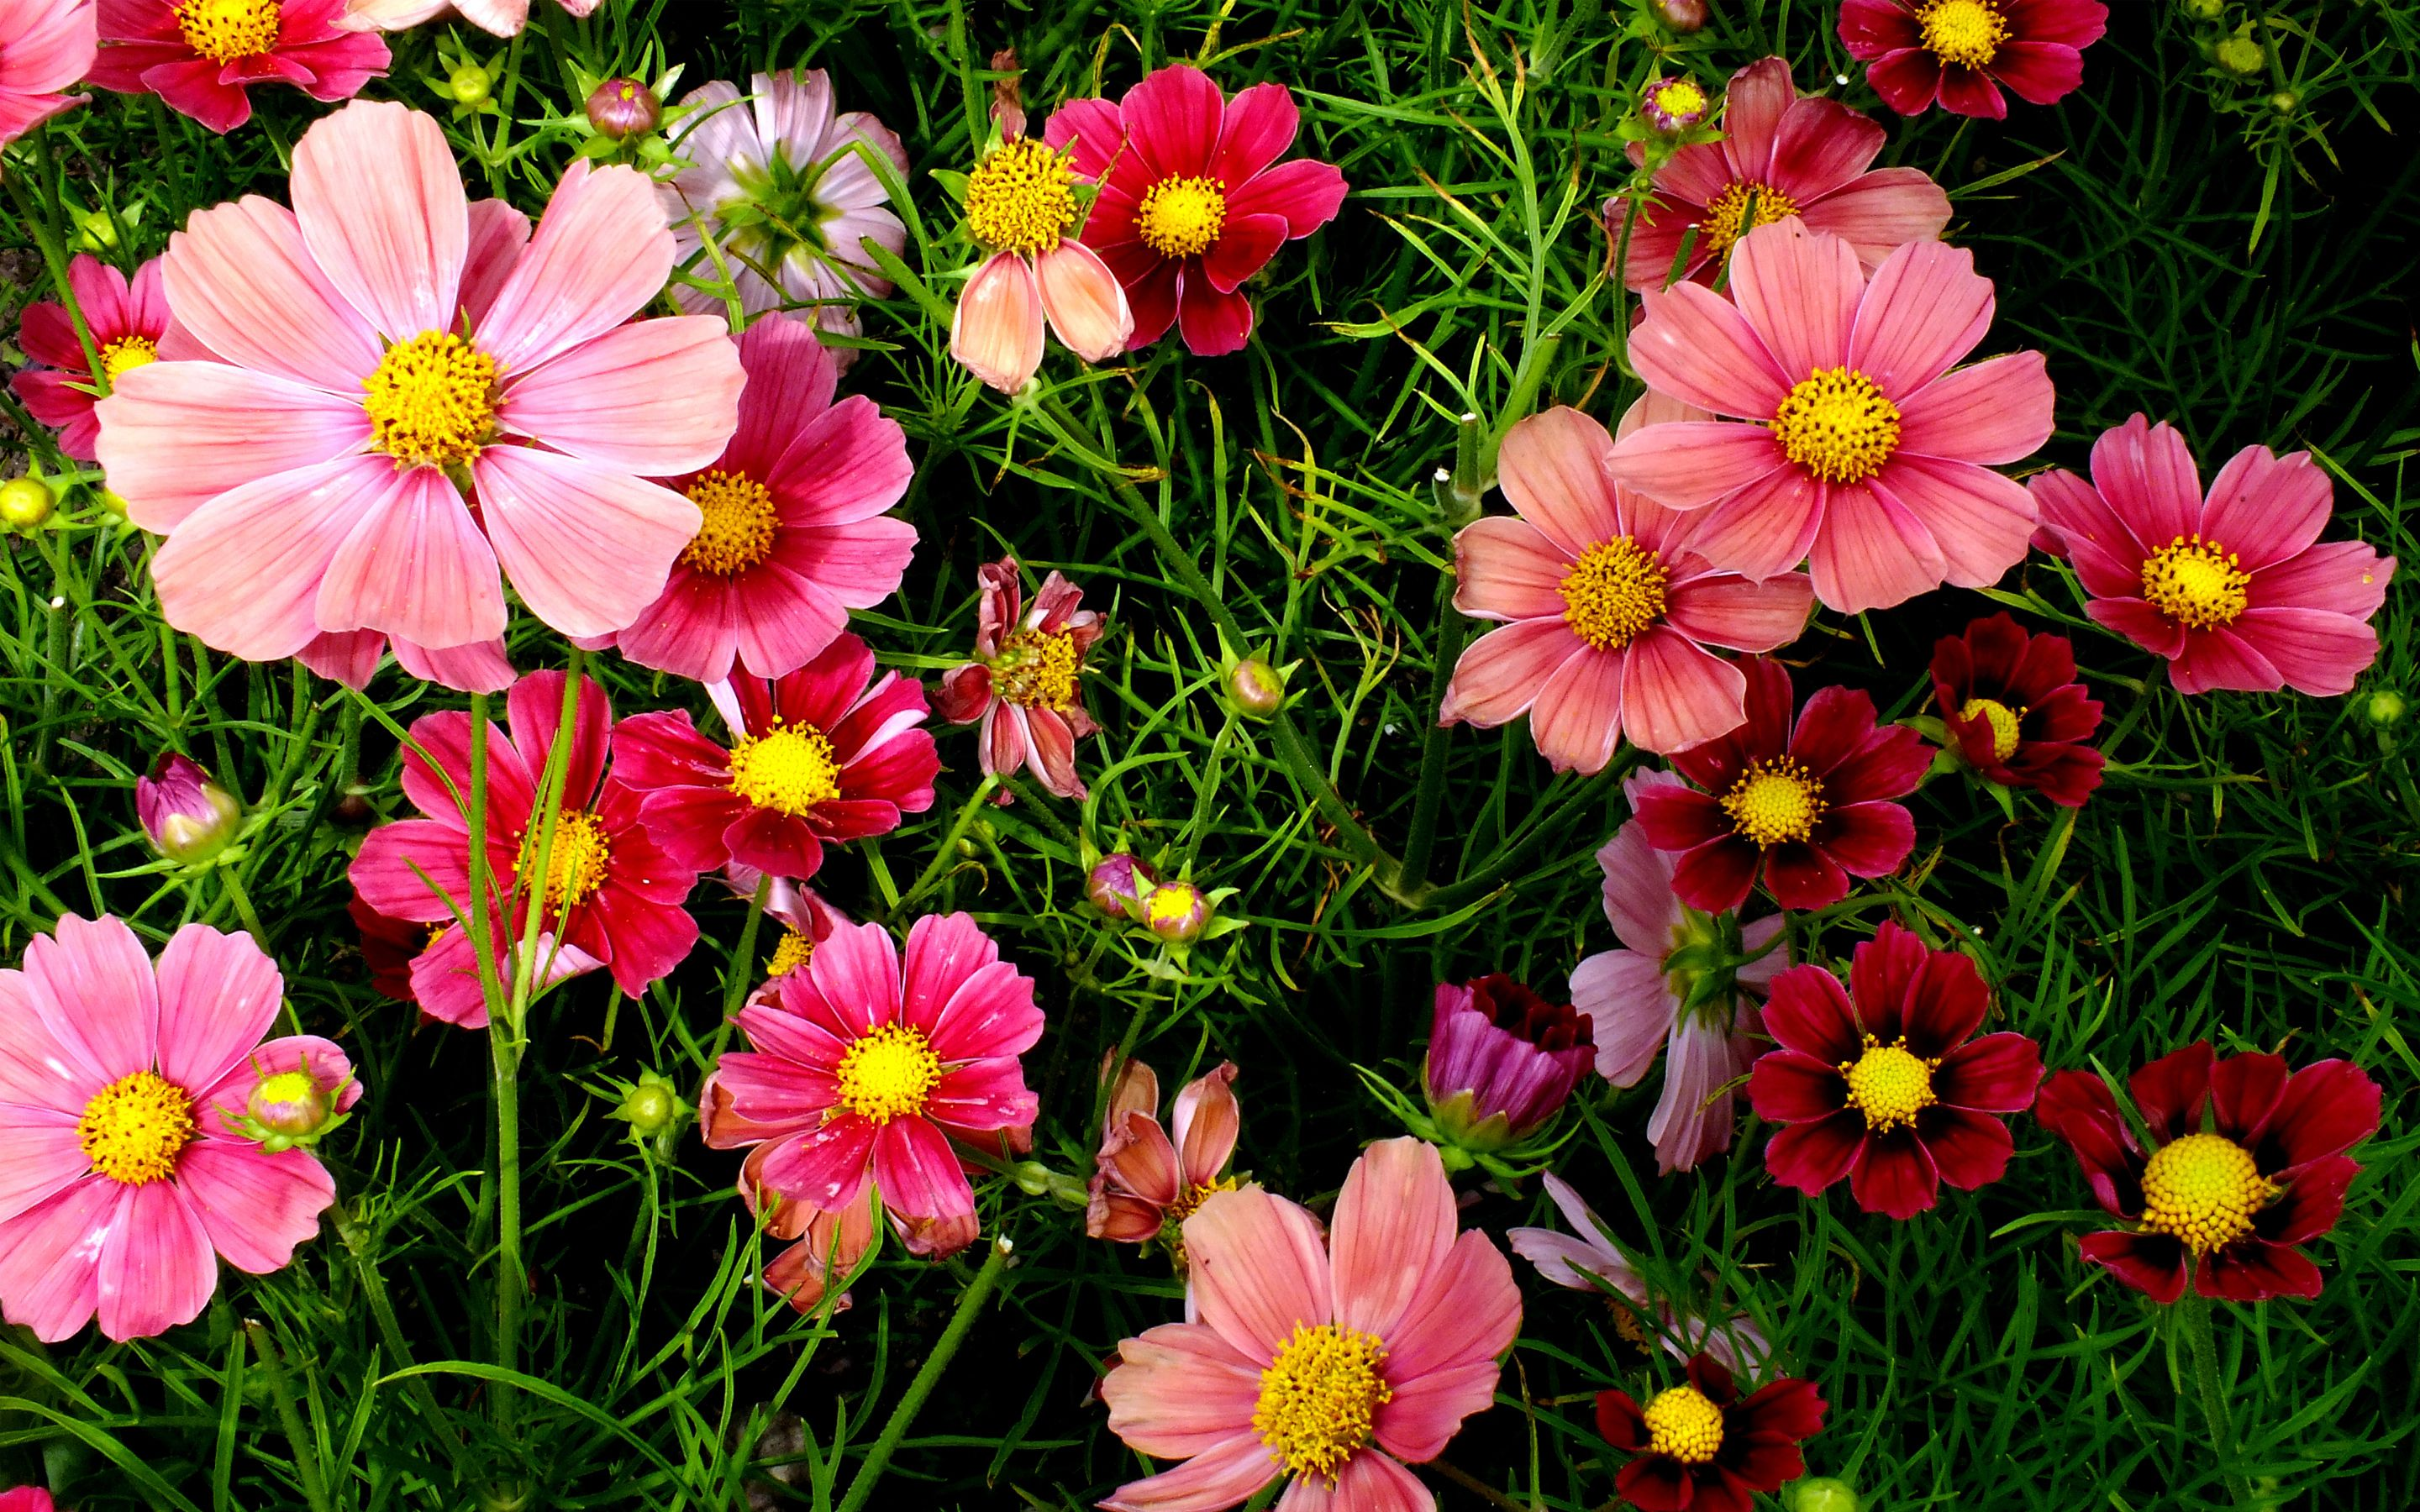 Jesus My Friend Cosmos Flowers Beautiful Flowers Images Flowers Online